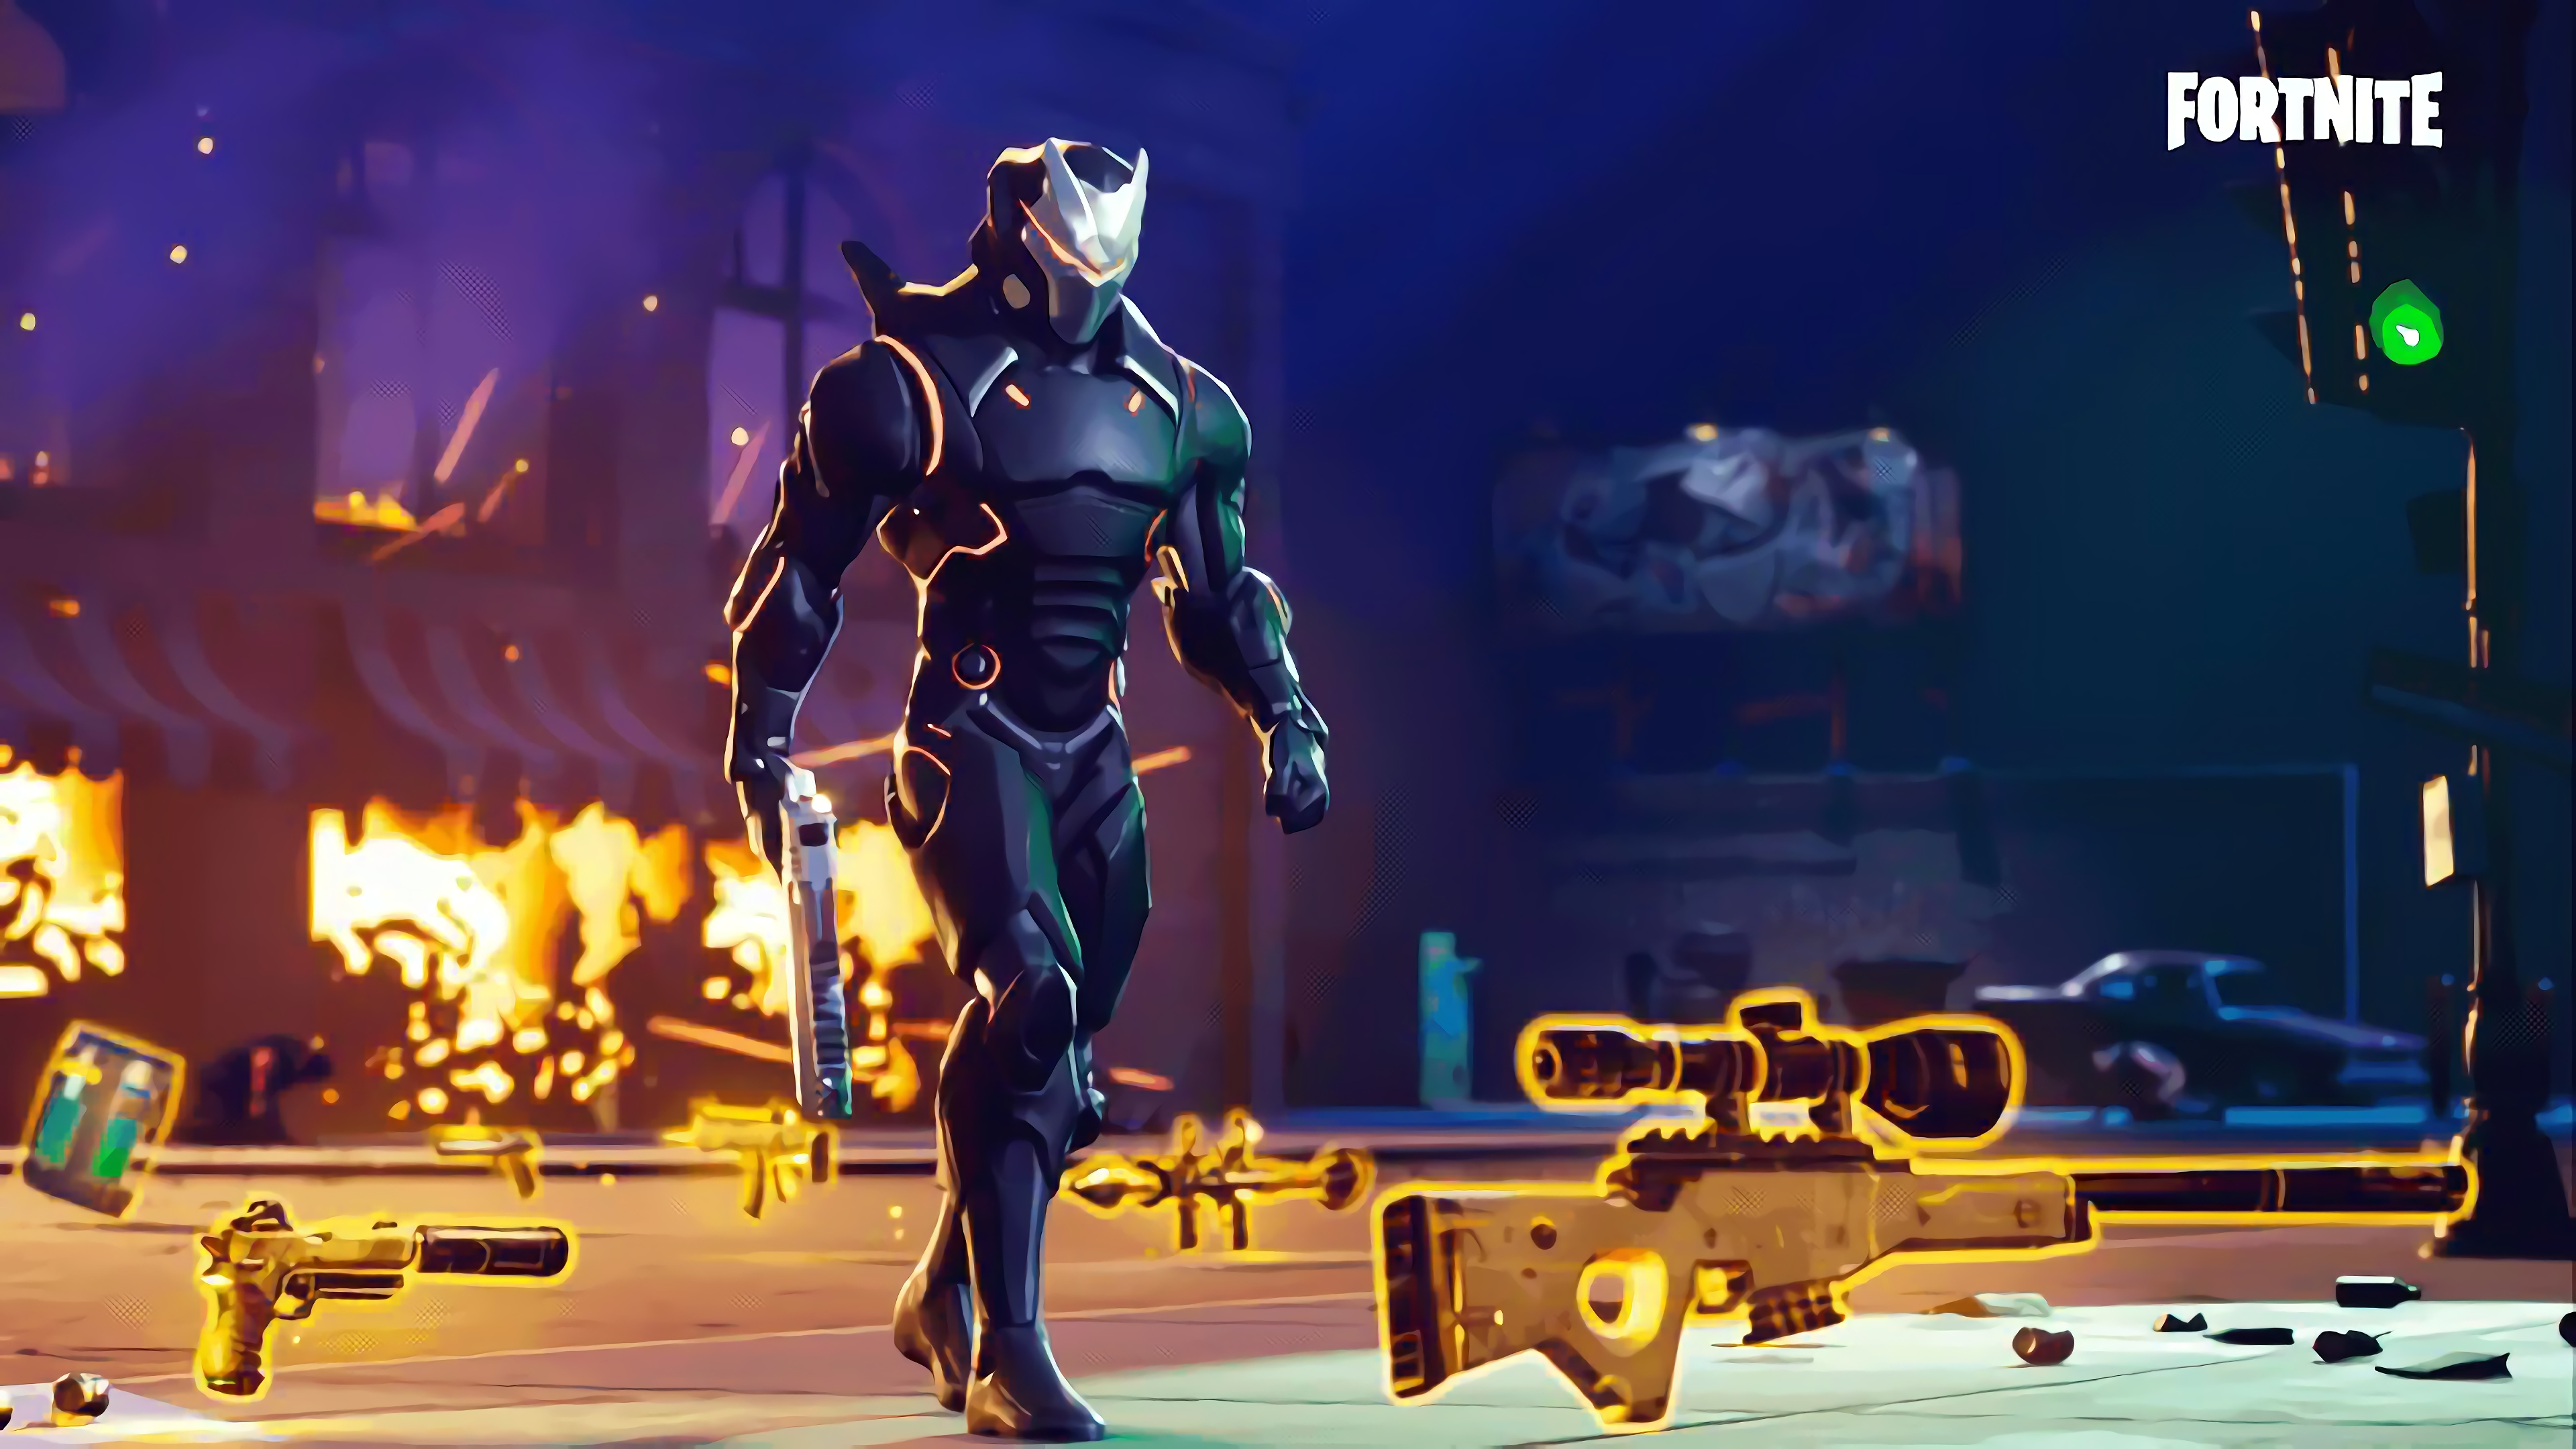 Cool Backgrounds Fortnite Omega